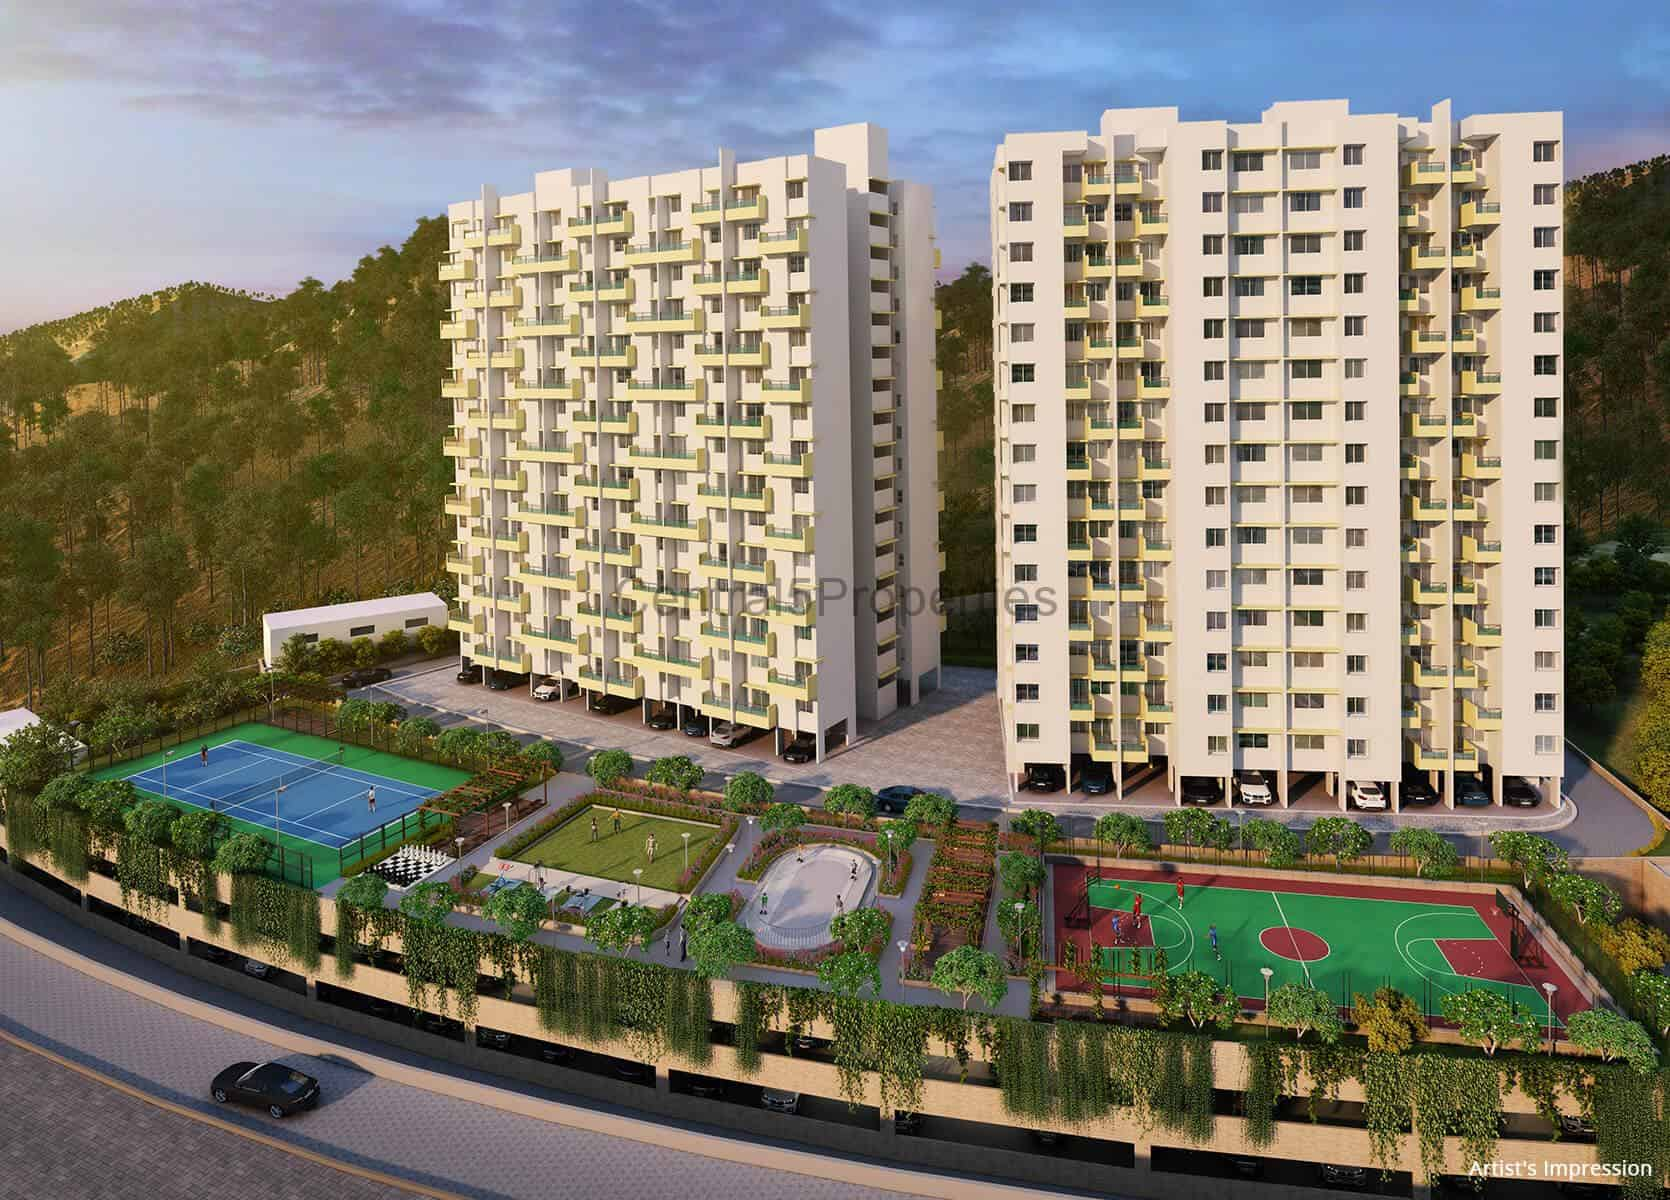 3BHK flats for sale in Pune